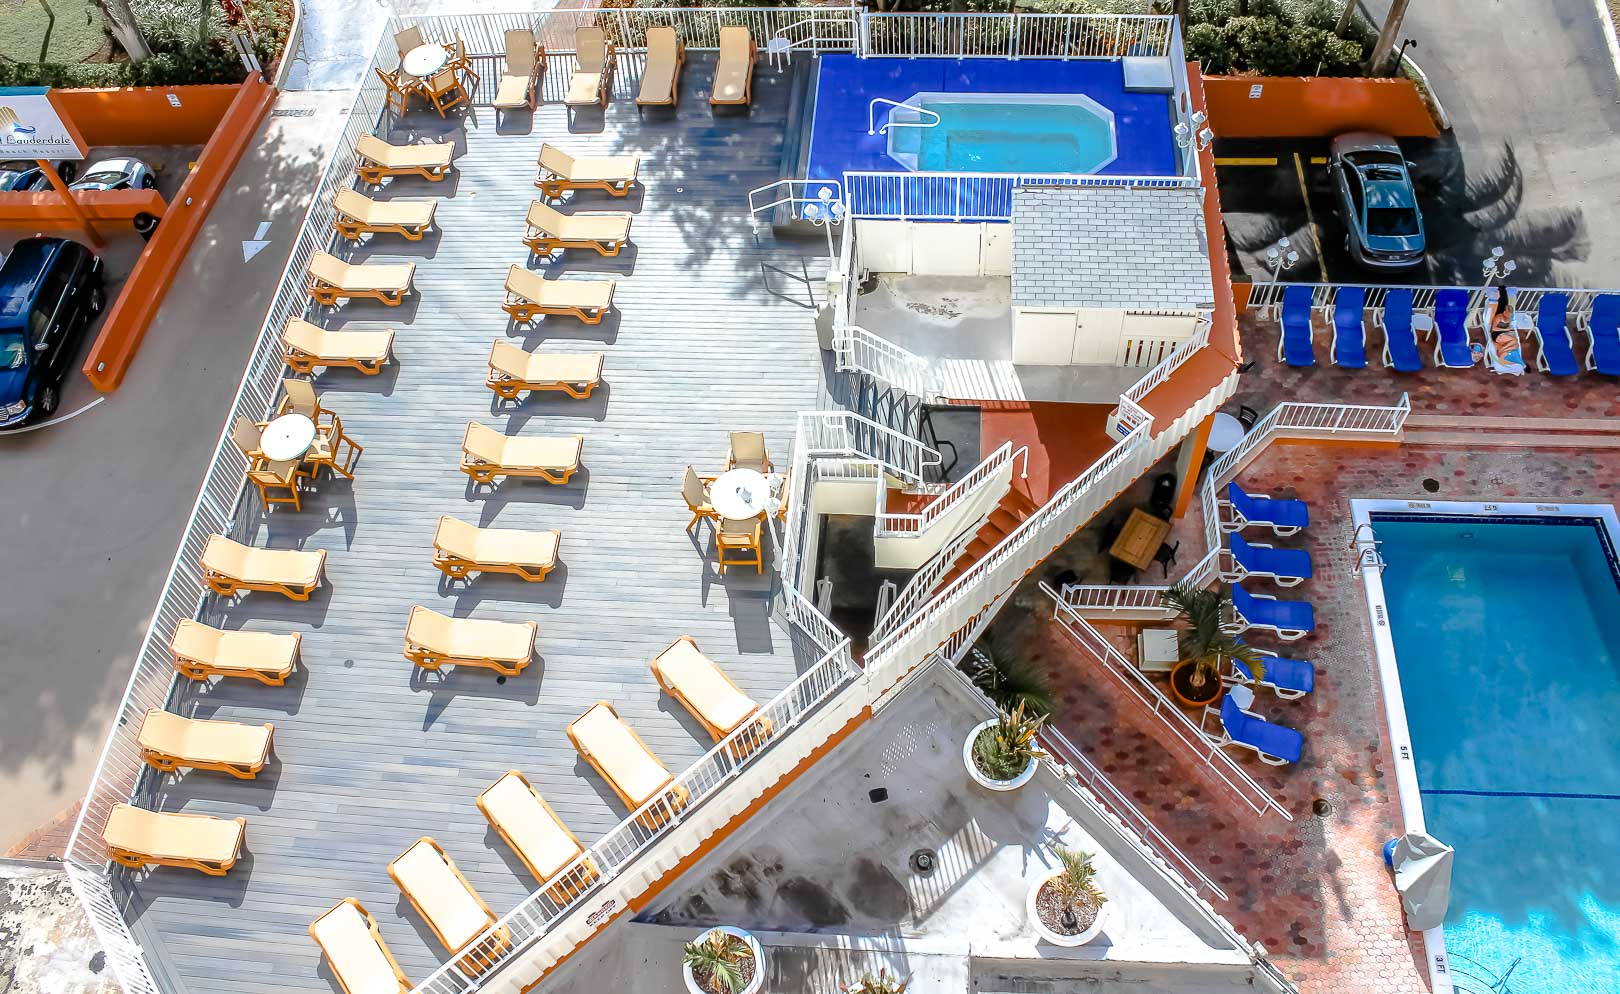 A view of the outside deck and the pool at VRI's Ft. Lauderdale Beach Resort in Florida.